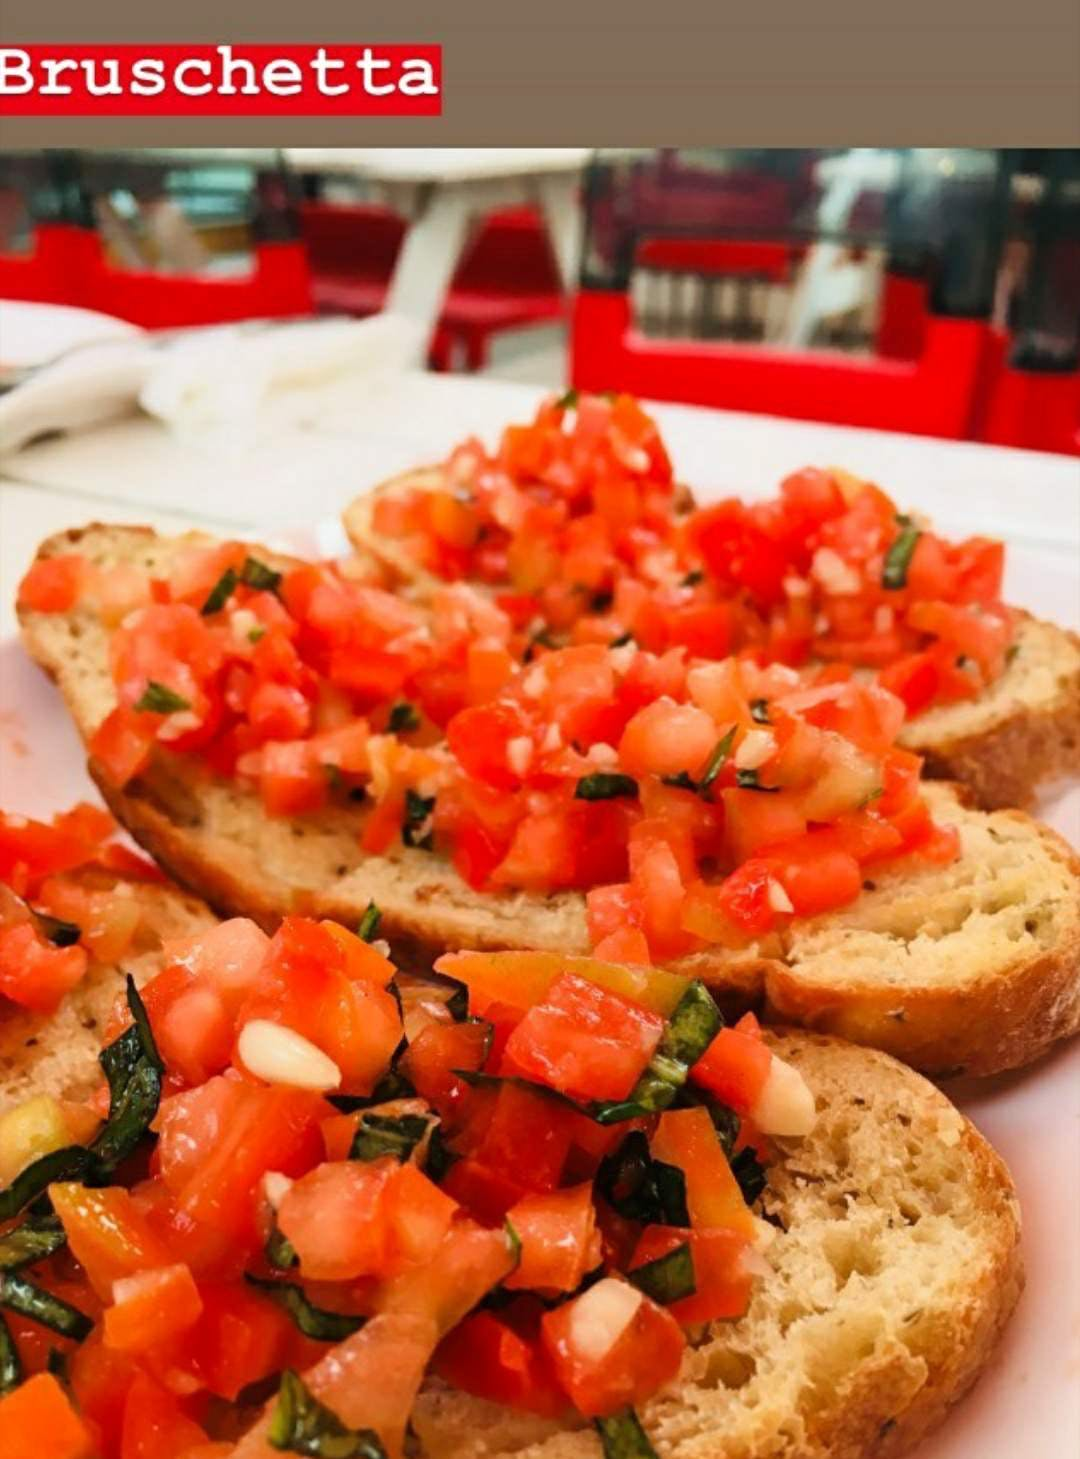 A Trip To Italy? Drop By This Cafe For Roberto's Amazing Italian Delicacies